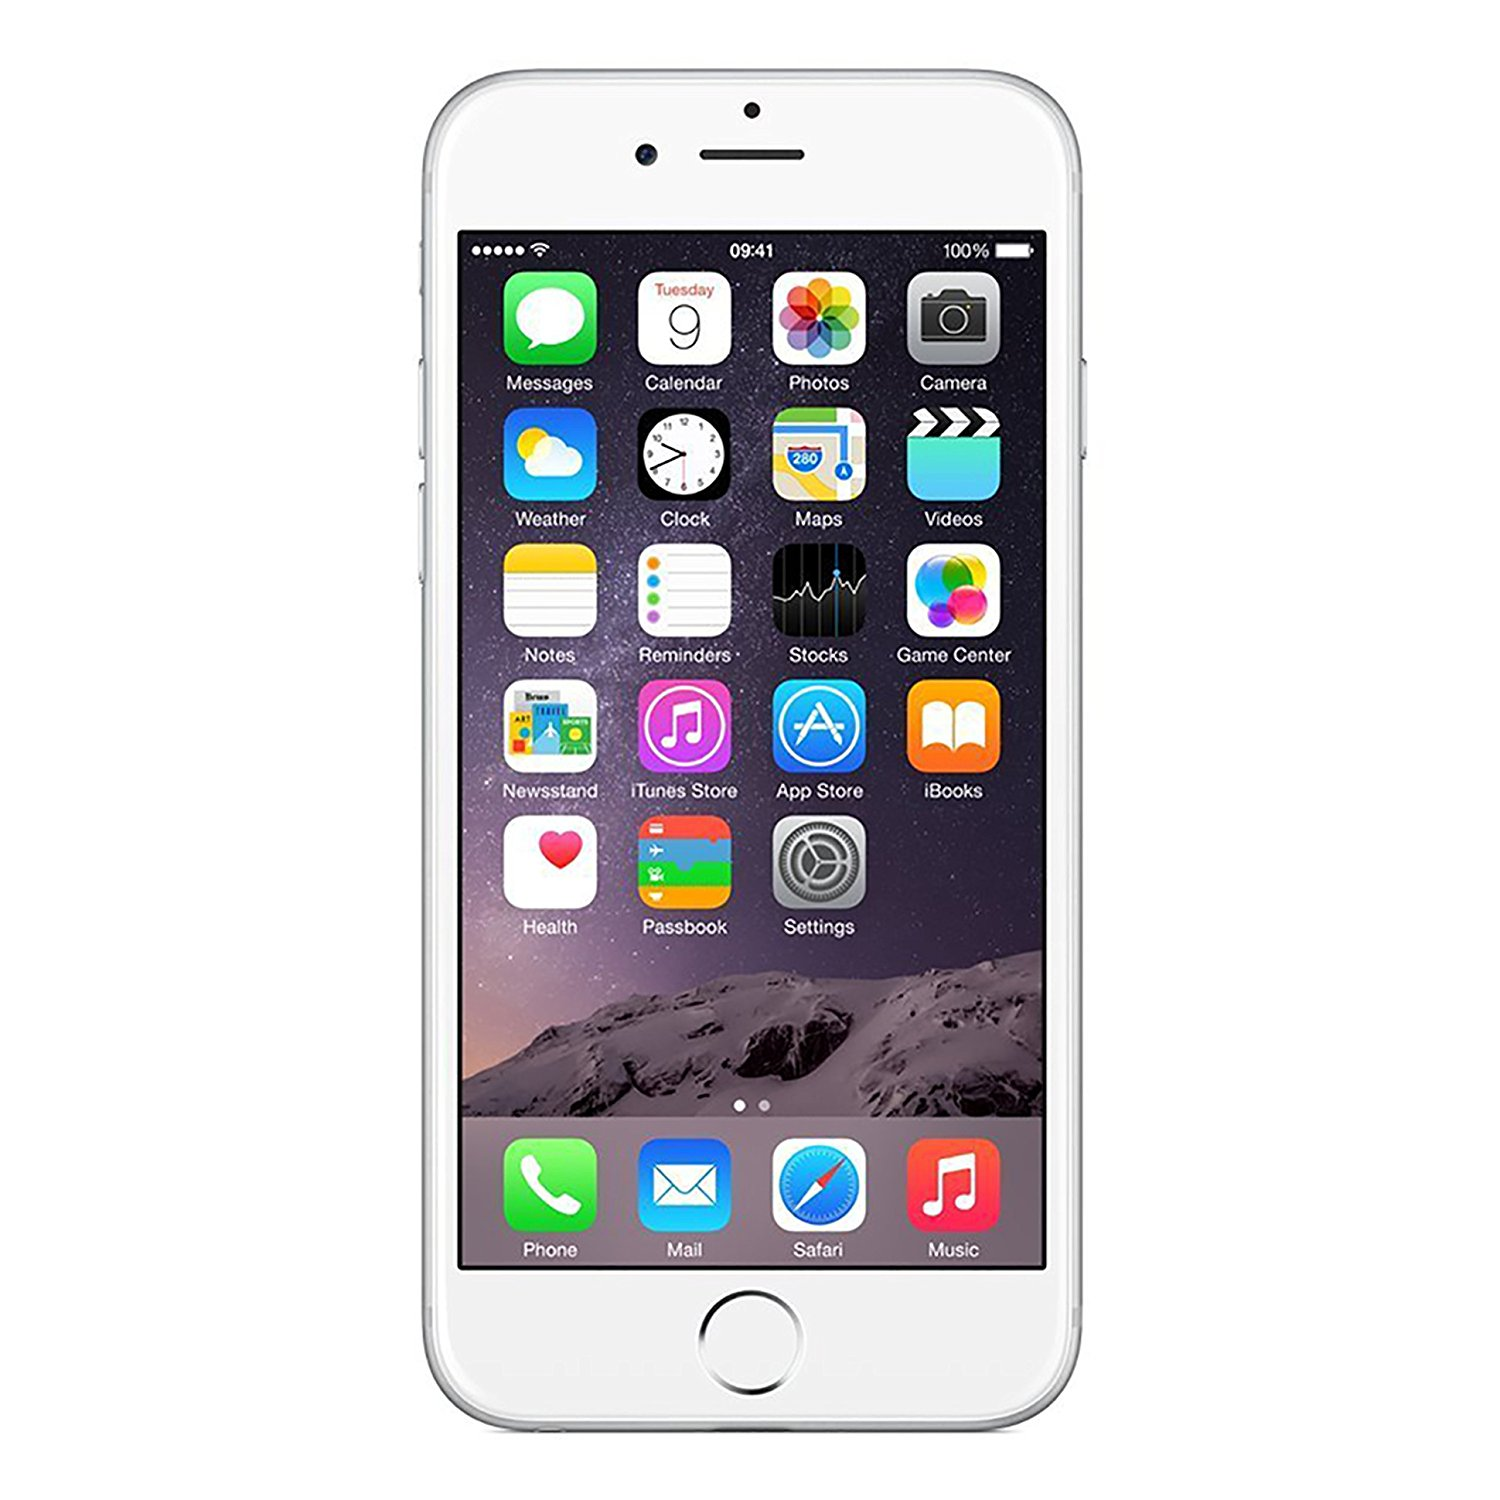 Shop for iphone 6 sprint at Best Buy. Find low everyday prices and buy online for delivery or in-store pick-up. Hottest Deals. Great deals happening right now. Weekly Ad. This week's best deals, all in one place. Apple iPhone 6s Plus Apple iPhone 6s Plus (6) Apple iPhone 8 Apple iPhone 8 (4) Wireless Capability. 4G LTE 4G LTE (37) 2G 2G.